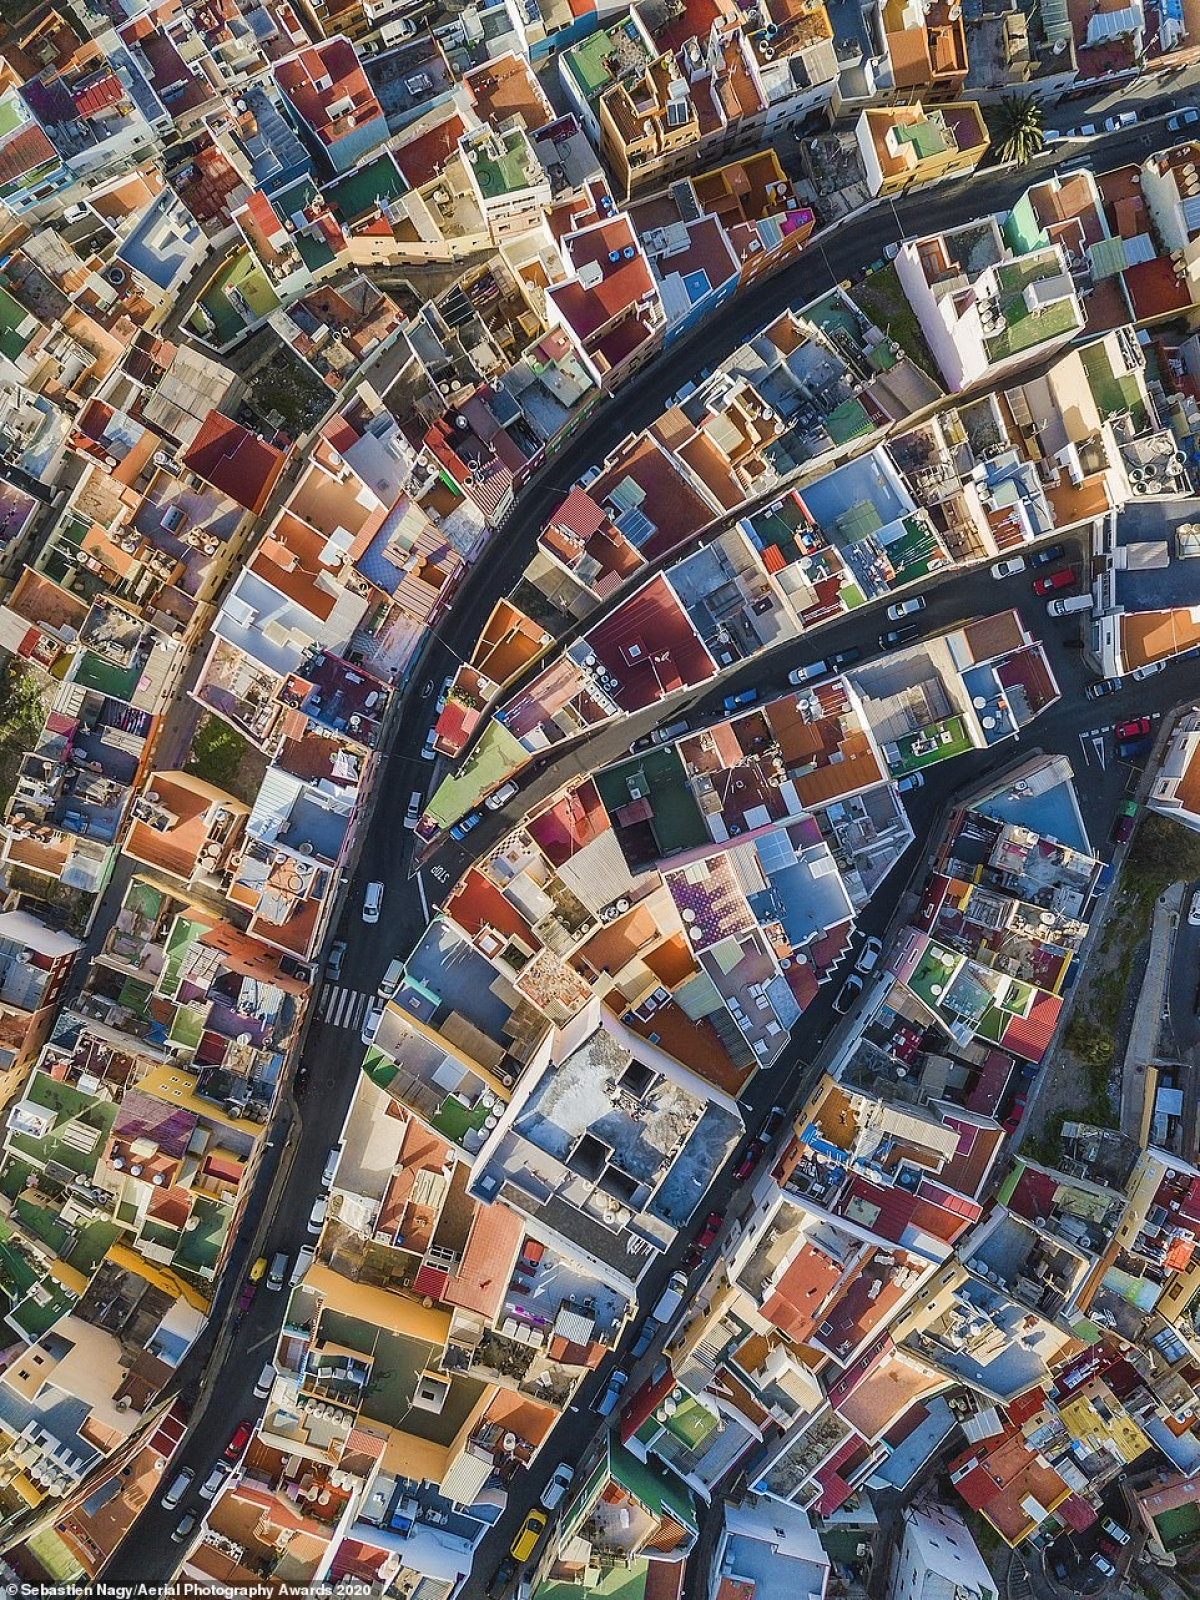 The colourful roofs of Las Palmas de Gran Canaria can be seen in a shot by Sebastien Nagy that ultimately compelled judges to award it first prize in the Cityscapes category.